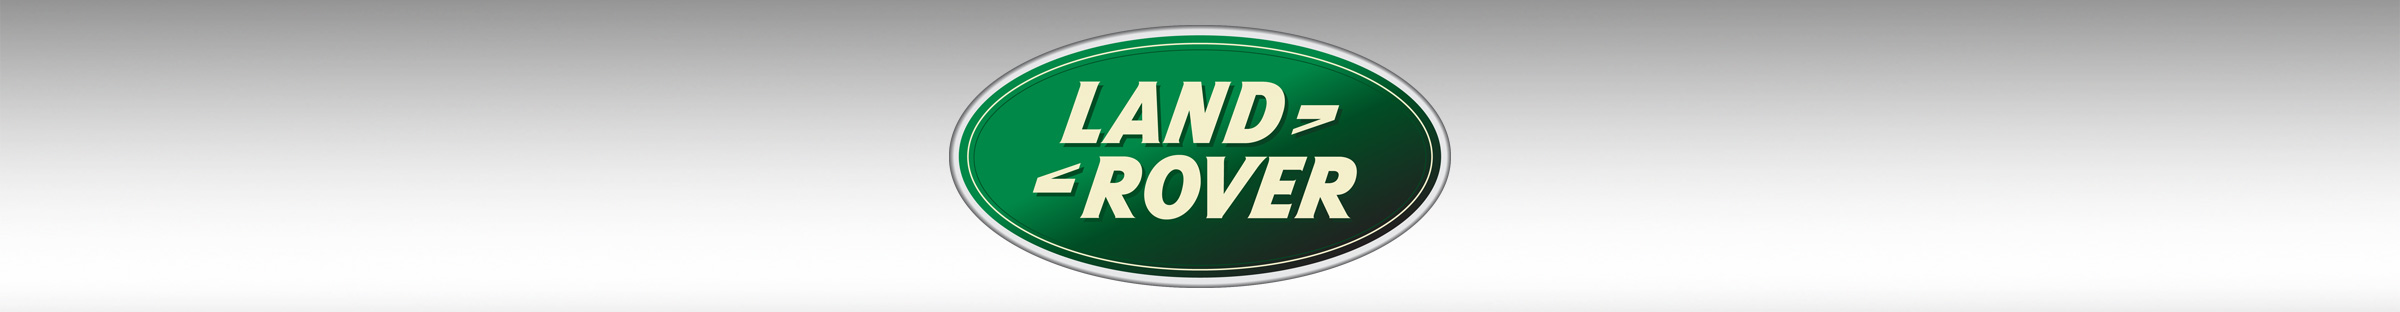 Featured Models from Land rover include the Velar and Discovery now at the 2018 Sacramento International Auto Show.